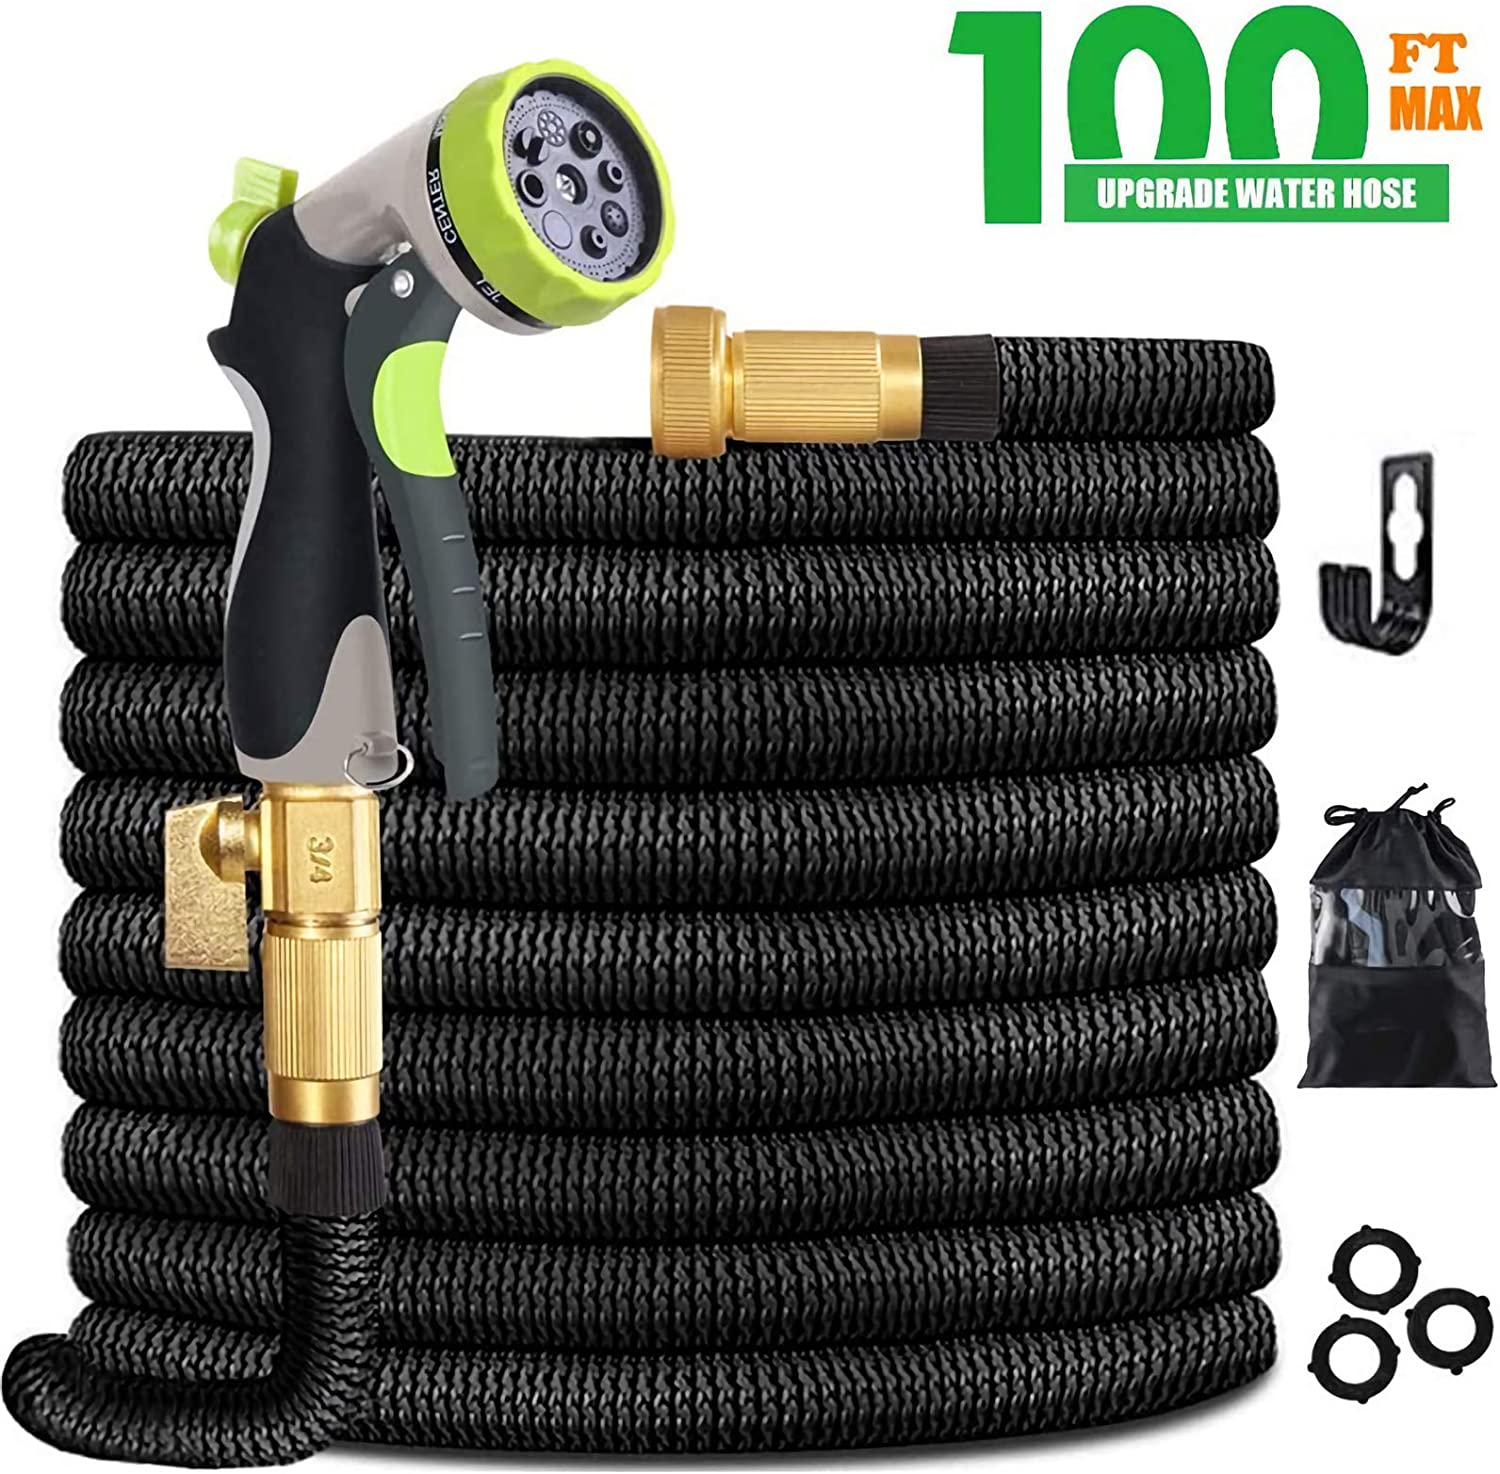 JAJ 100 ft Expandable Garden Hose Set Retractable Lightweight Durable Flexible Water Hose with 3/4 Nozzle Solid Valve and High Pressure Water Spray Nozzle Hoses : Garden & Outdoor